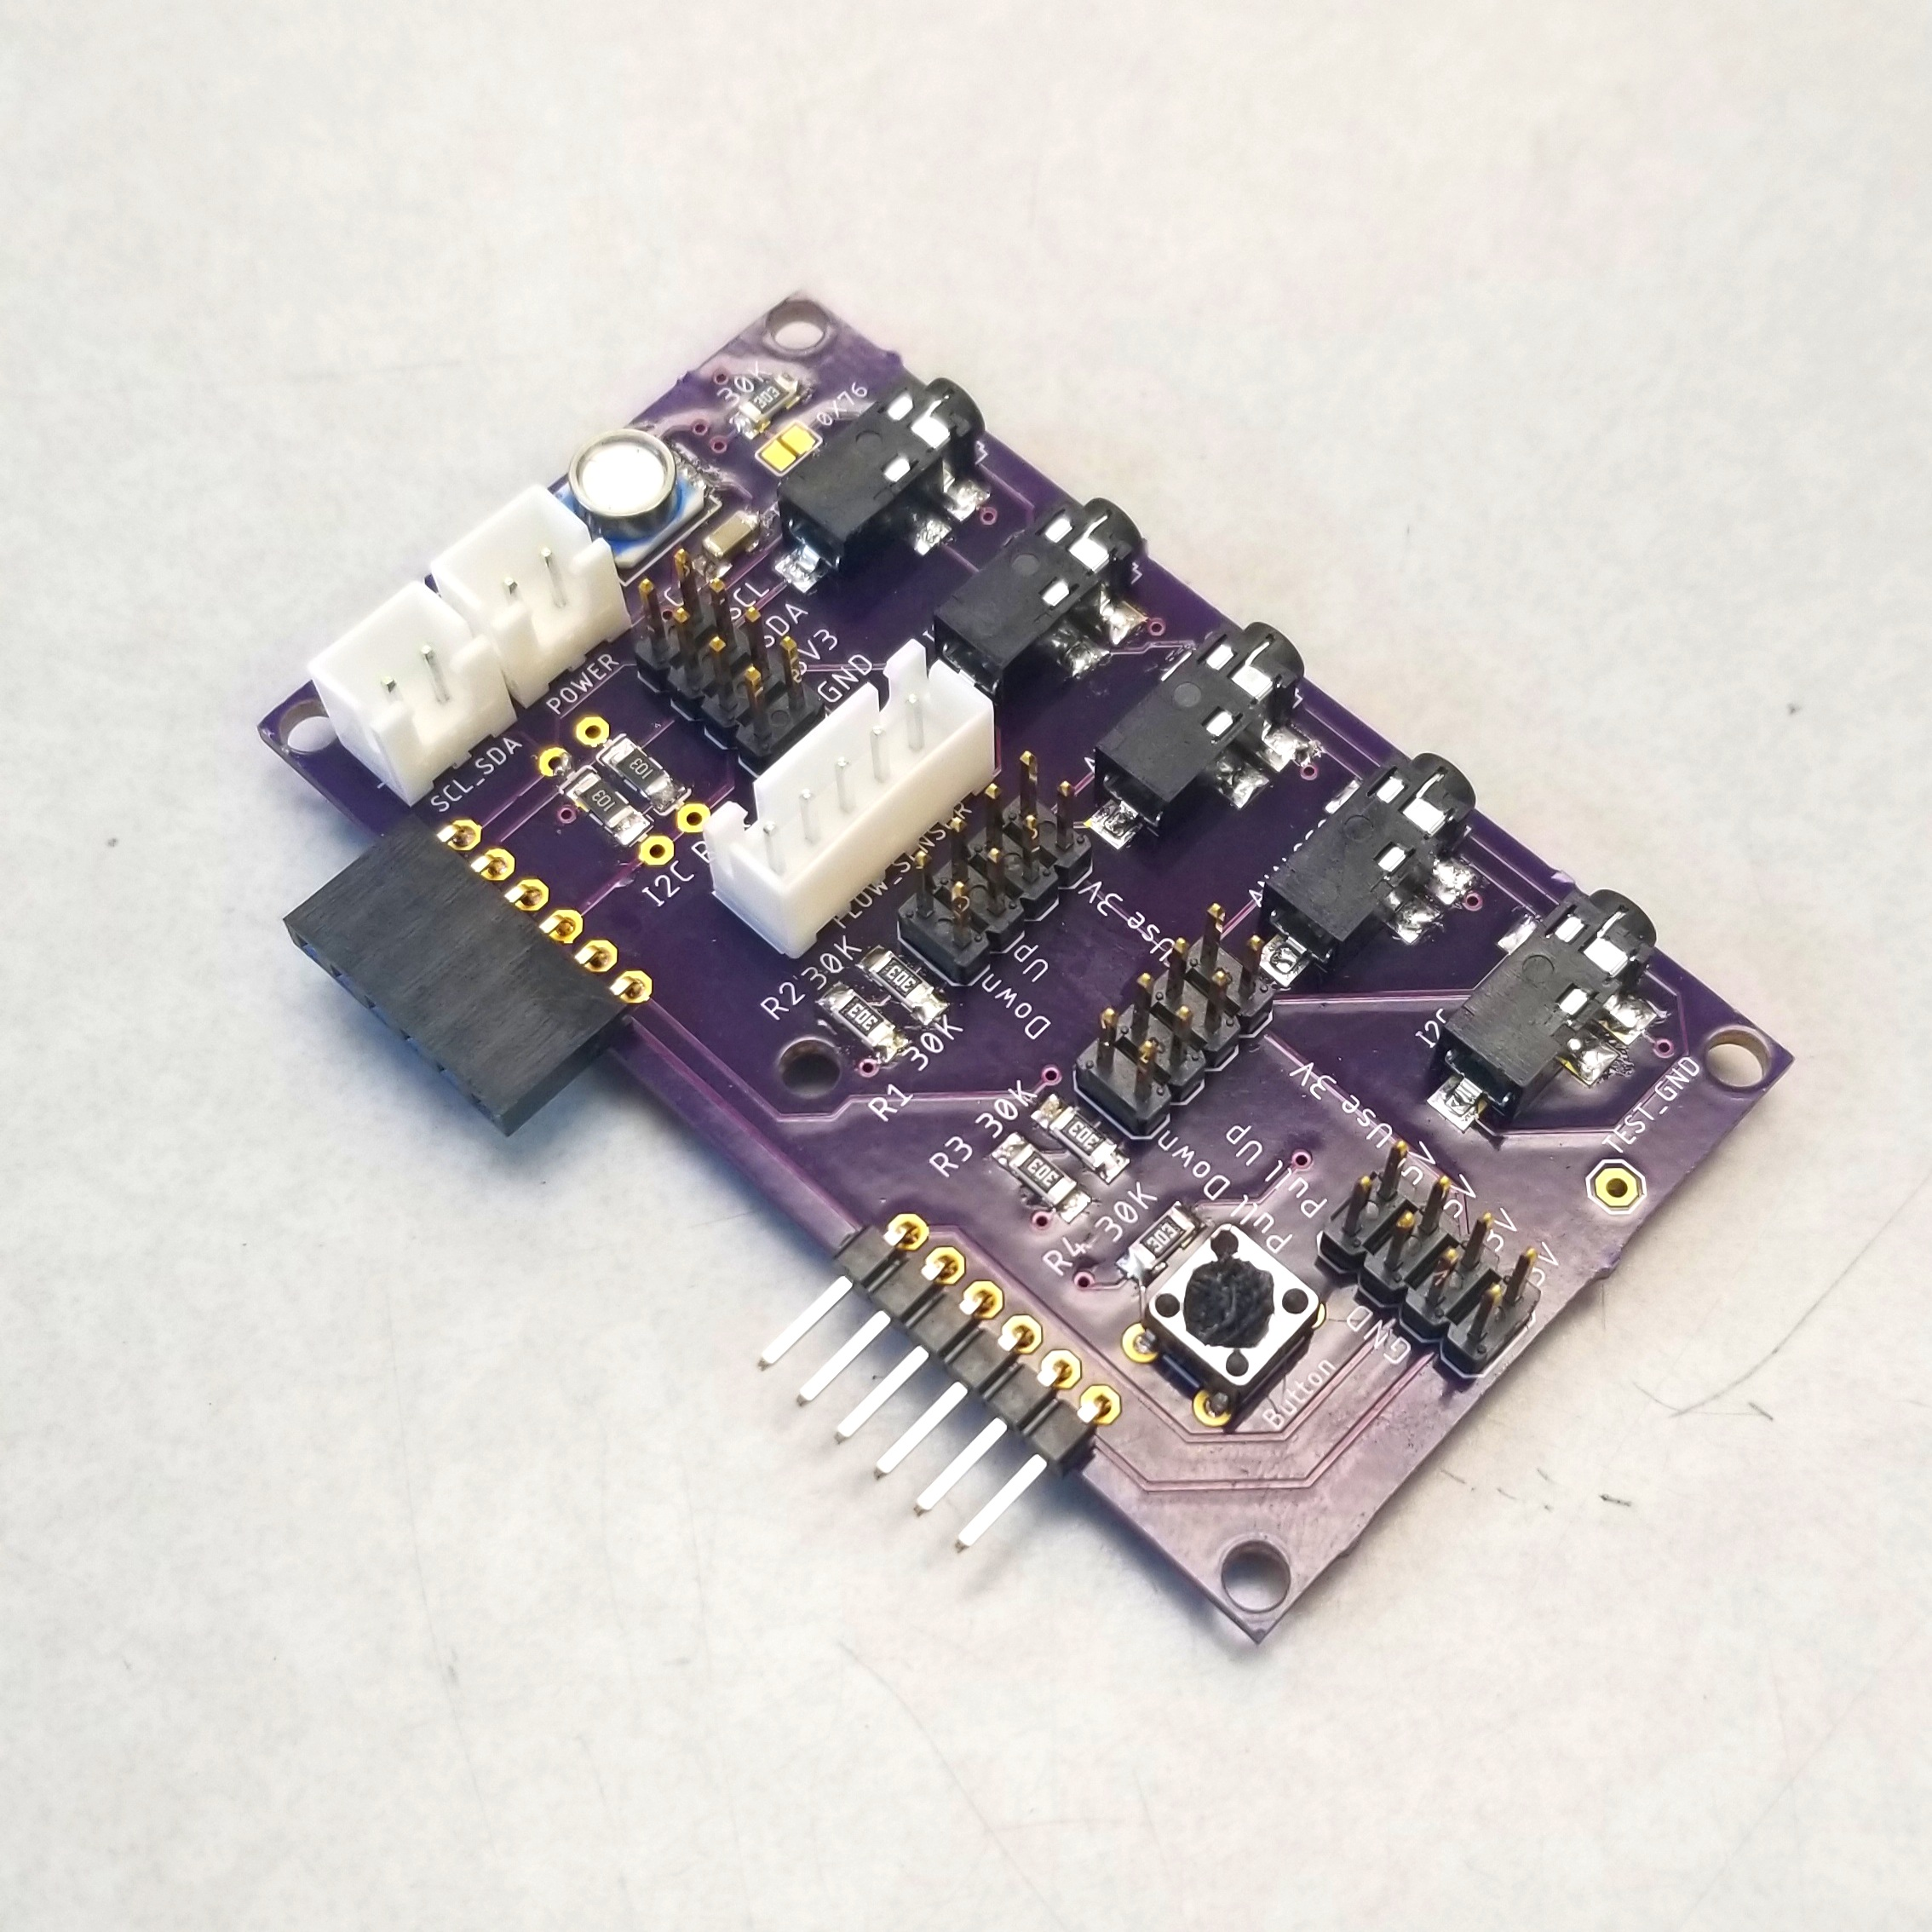 Sensor Module with barometric pressure sensor - Separation between high power devices like motors and sensors are required to ensure the long term stability of the system